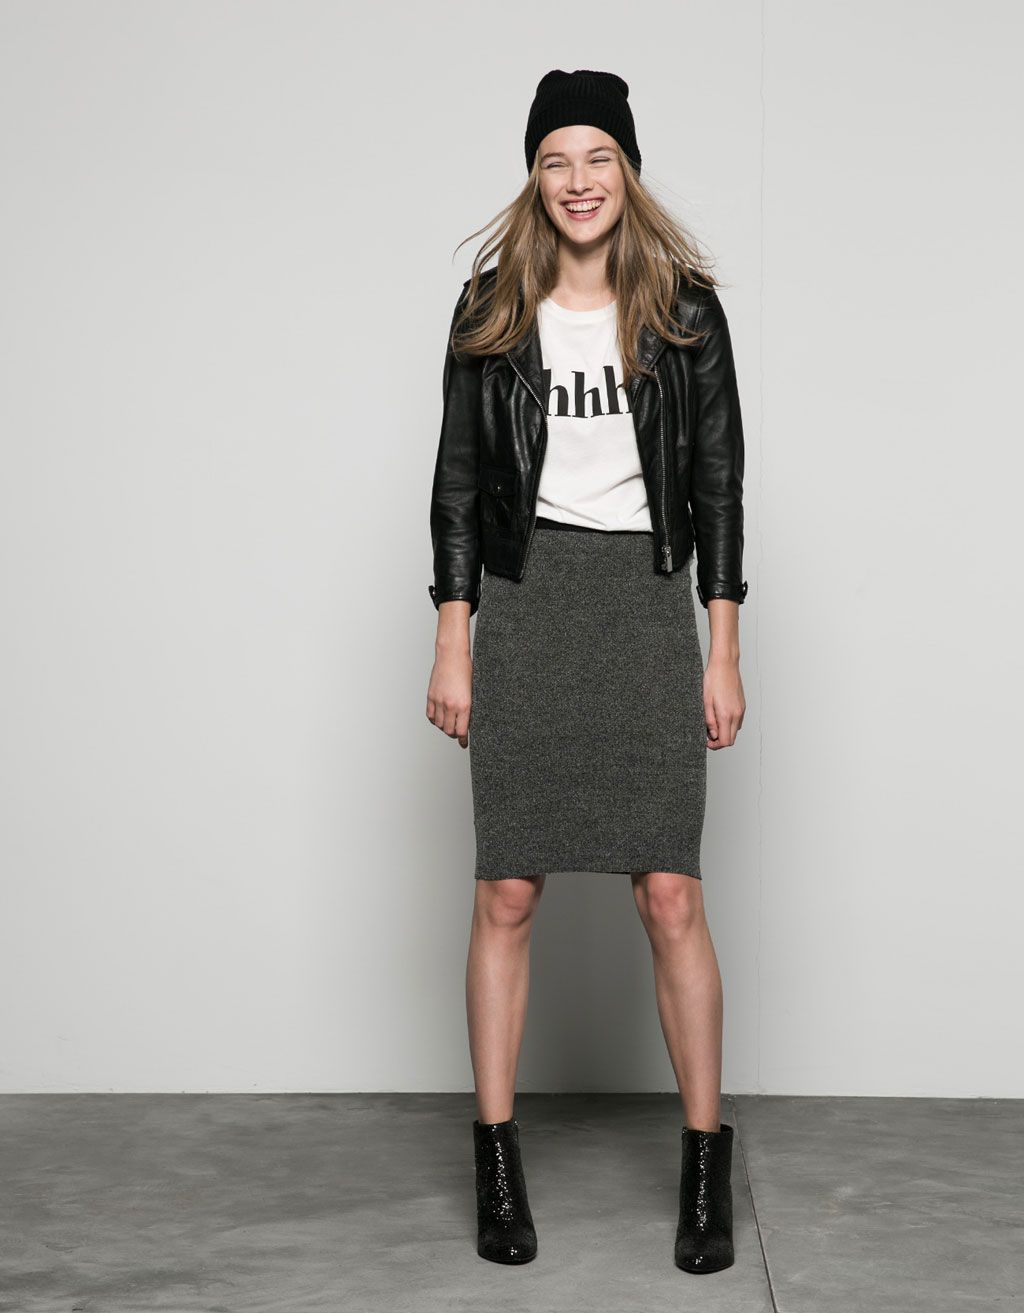 ribbed waist tube skirt. Discover this and many more items in Bershka with  new products every week 2c6757c1404d